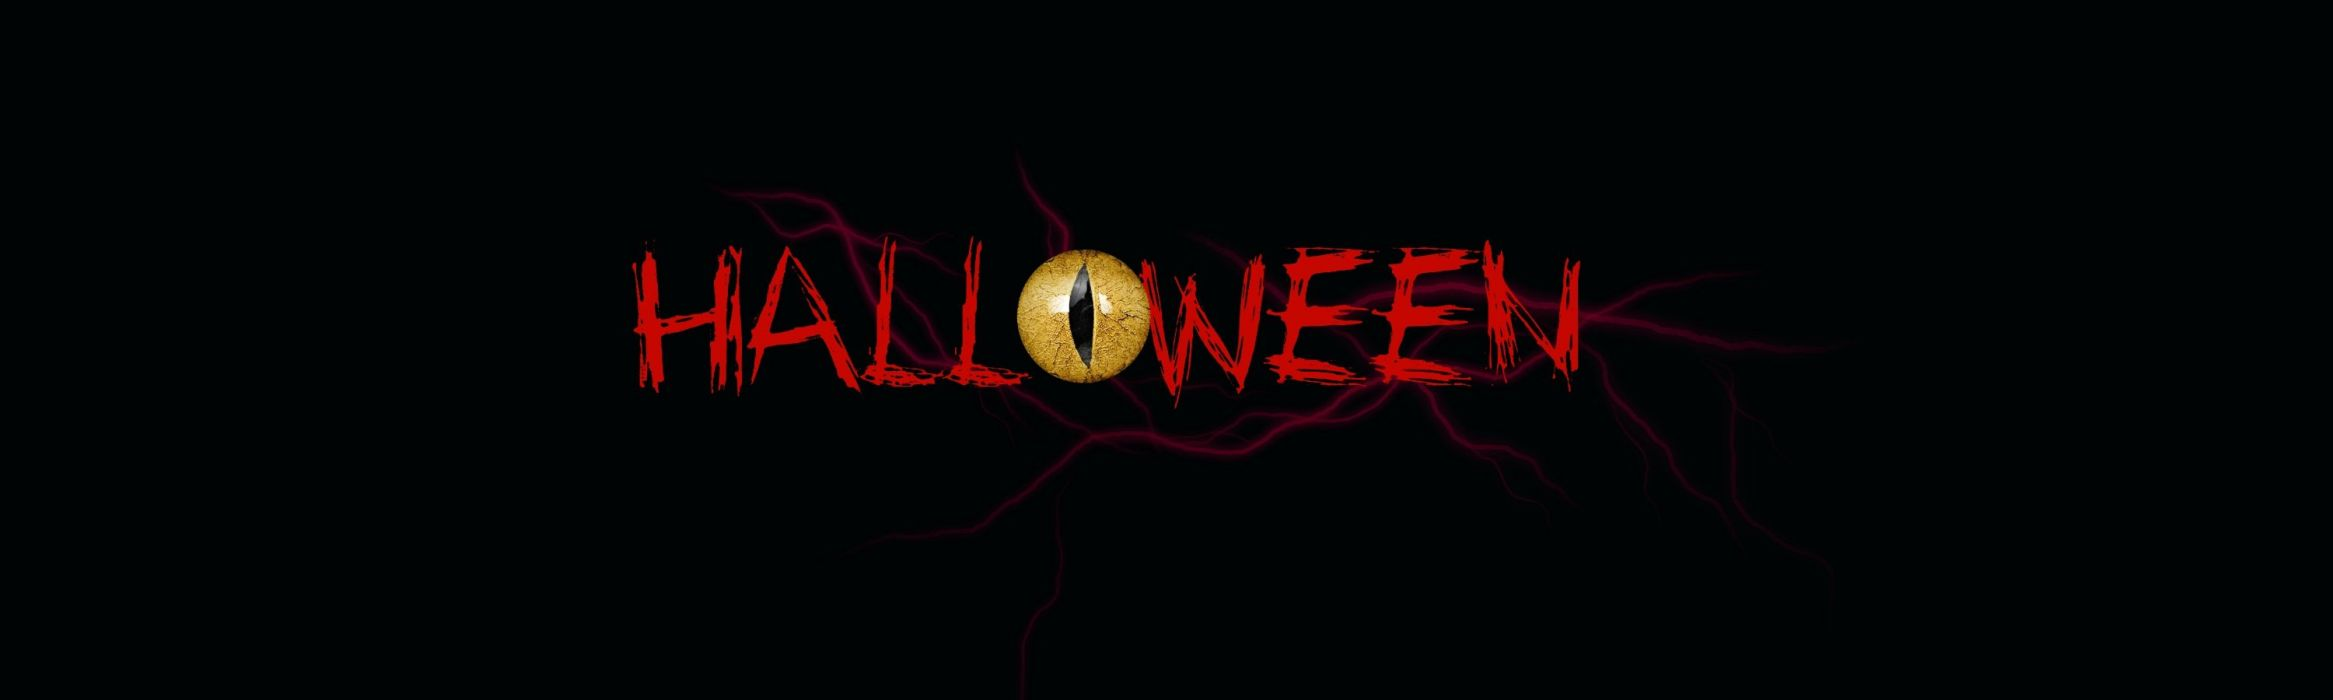 Banner Header Homepage Halloween Creepy Scary wallpaper